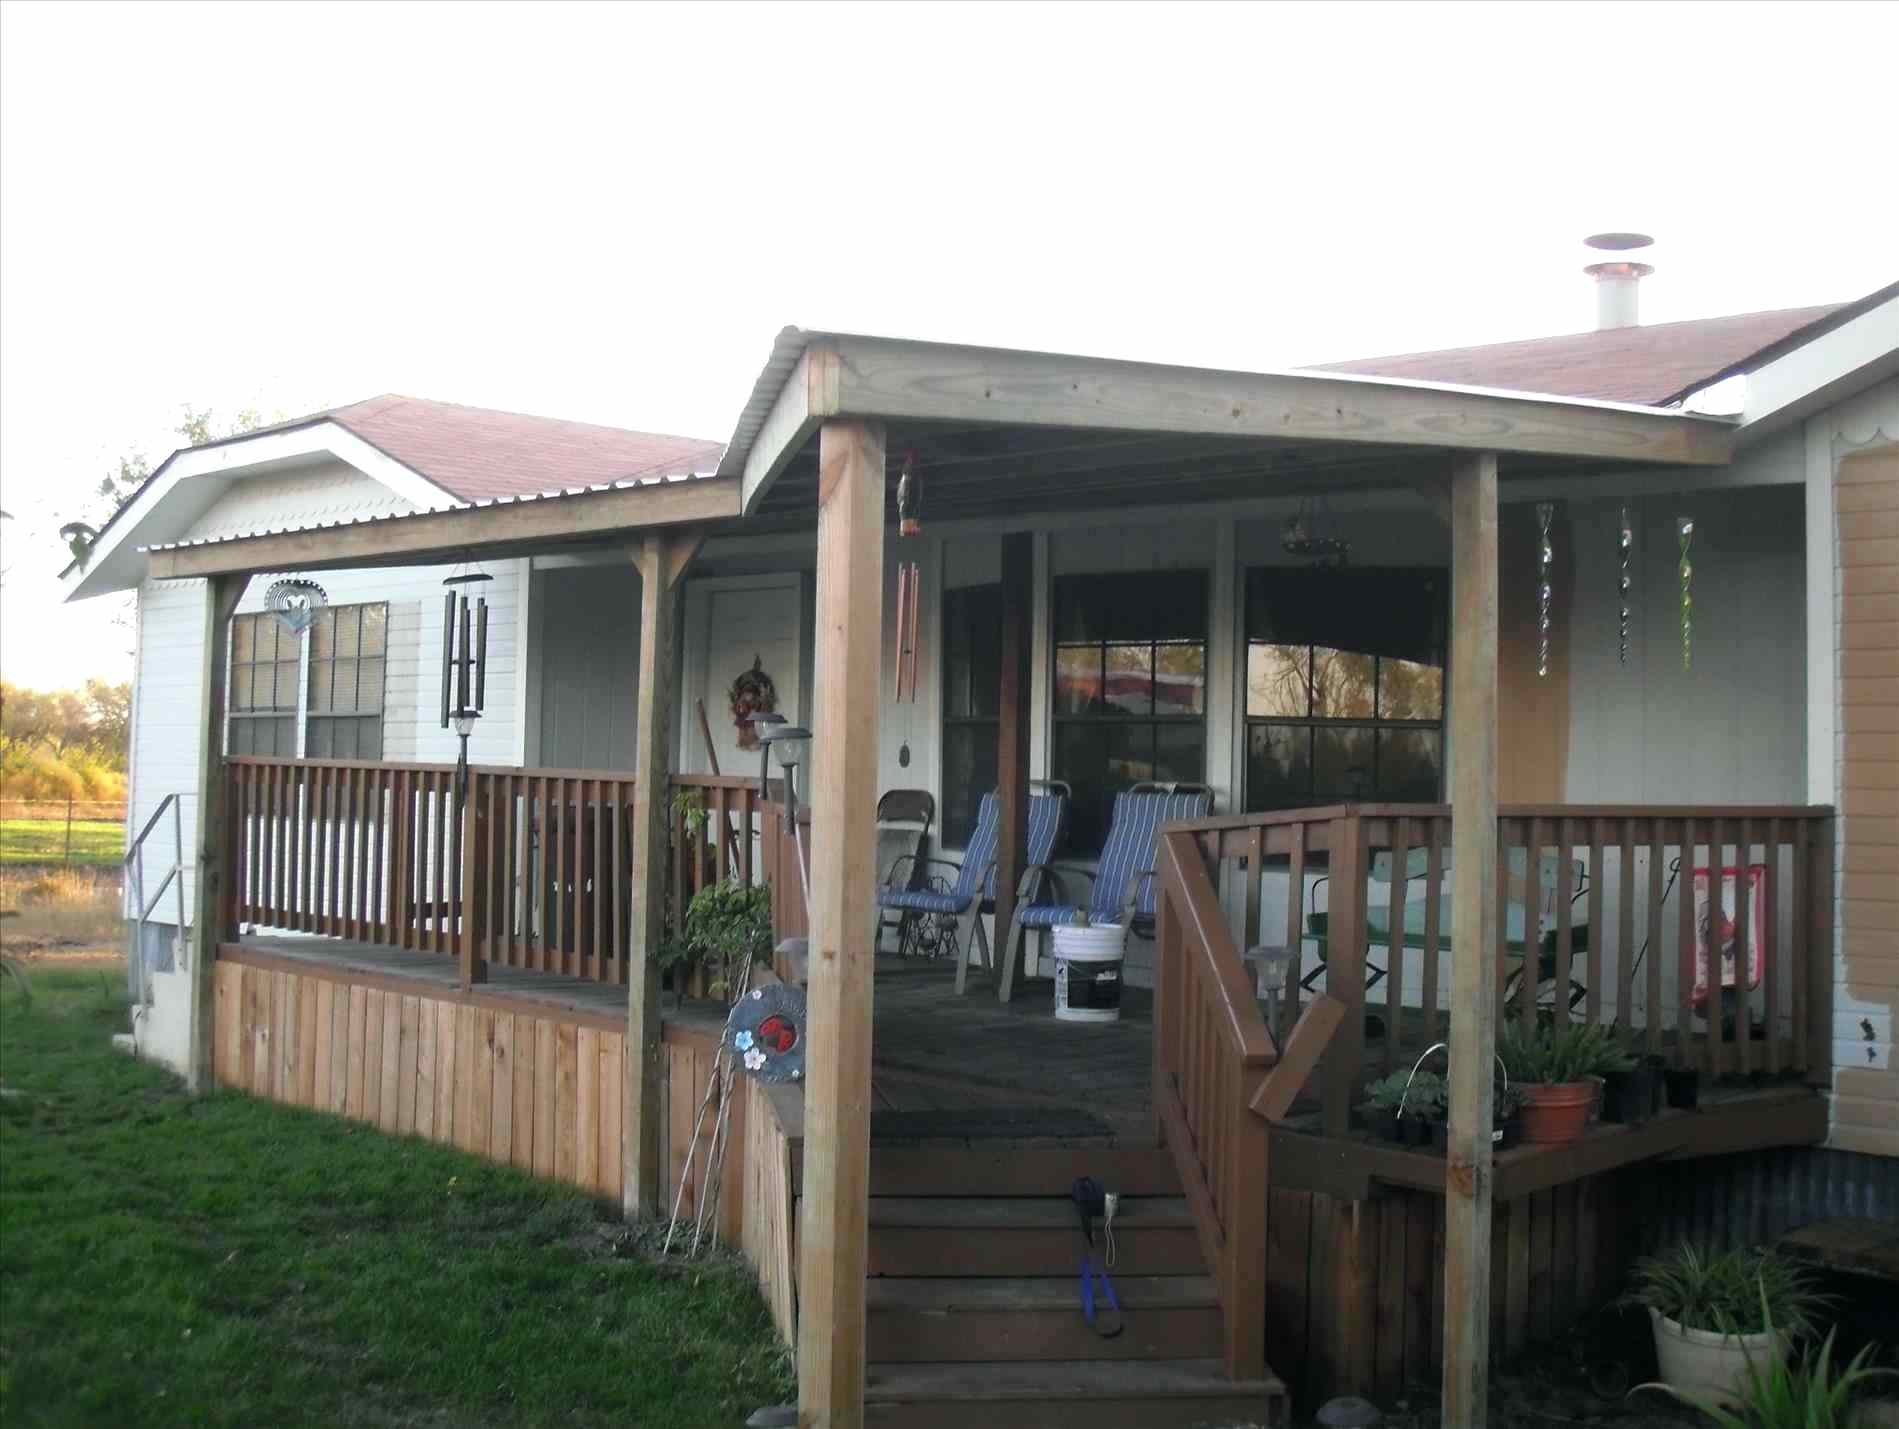 Inspiring Home Design Ideas with Mobile Home Porches: Mobile Homes Decks | Mobile Home Porches | Double Wide Porches